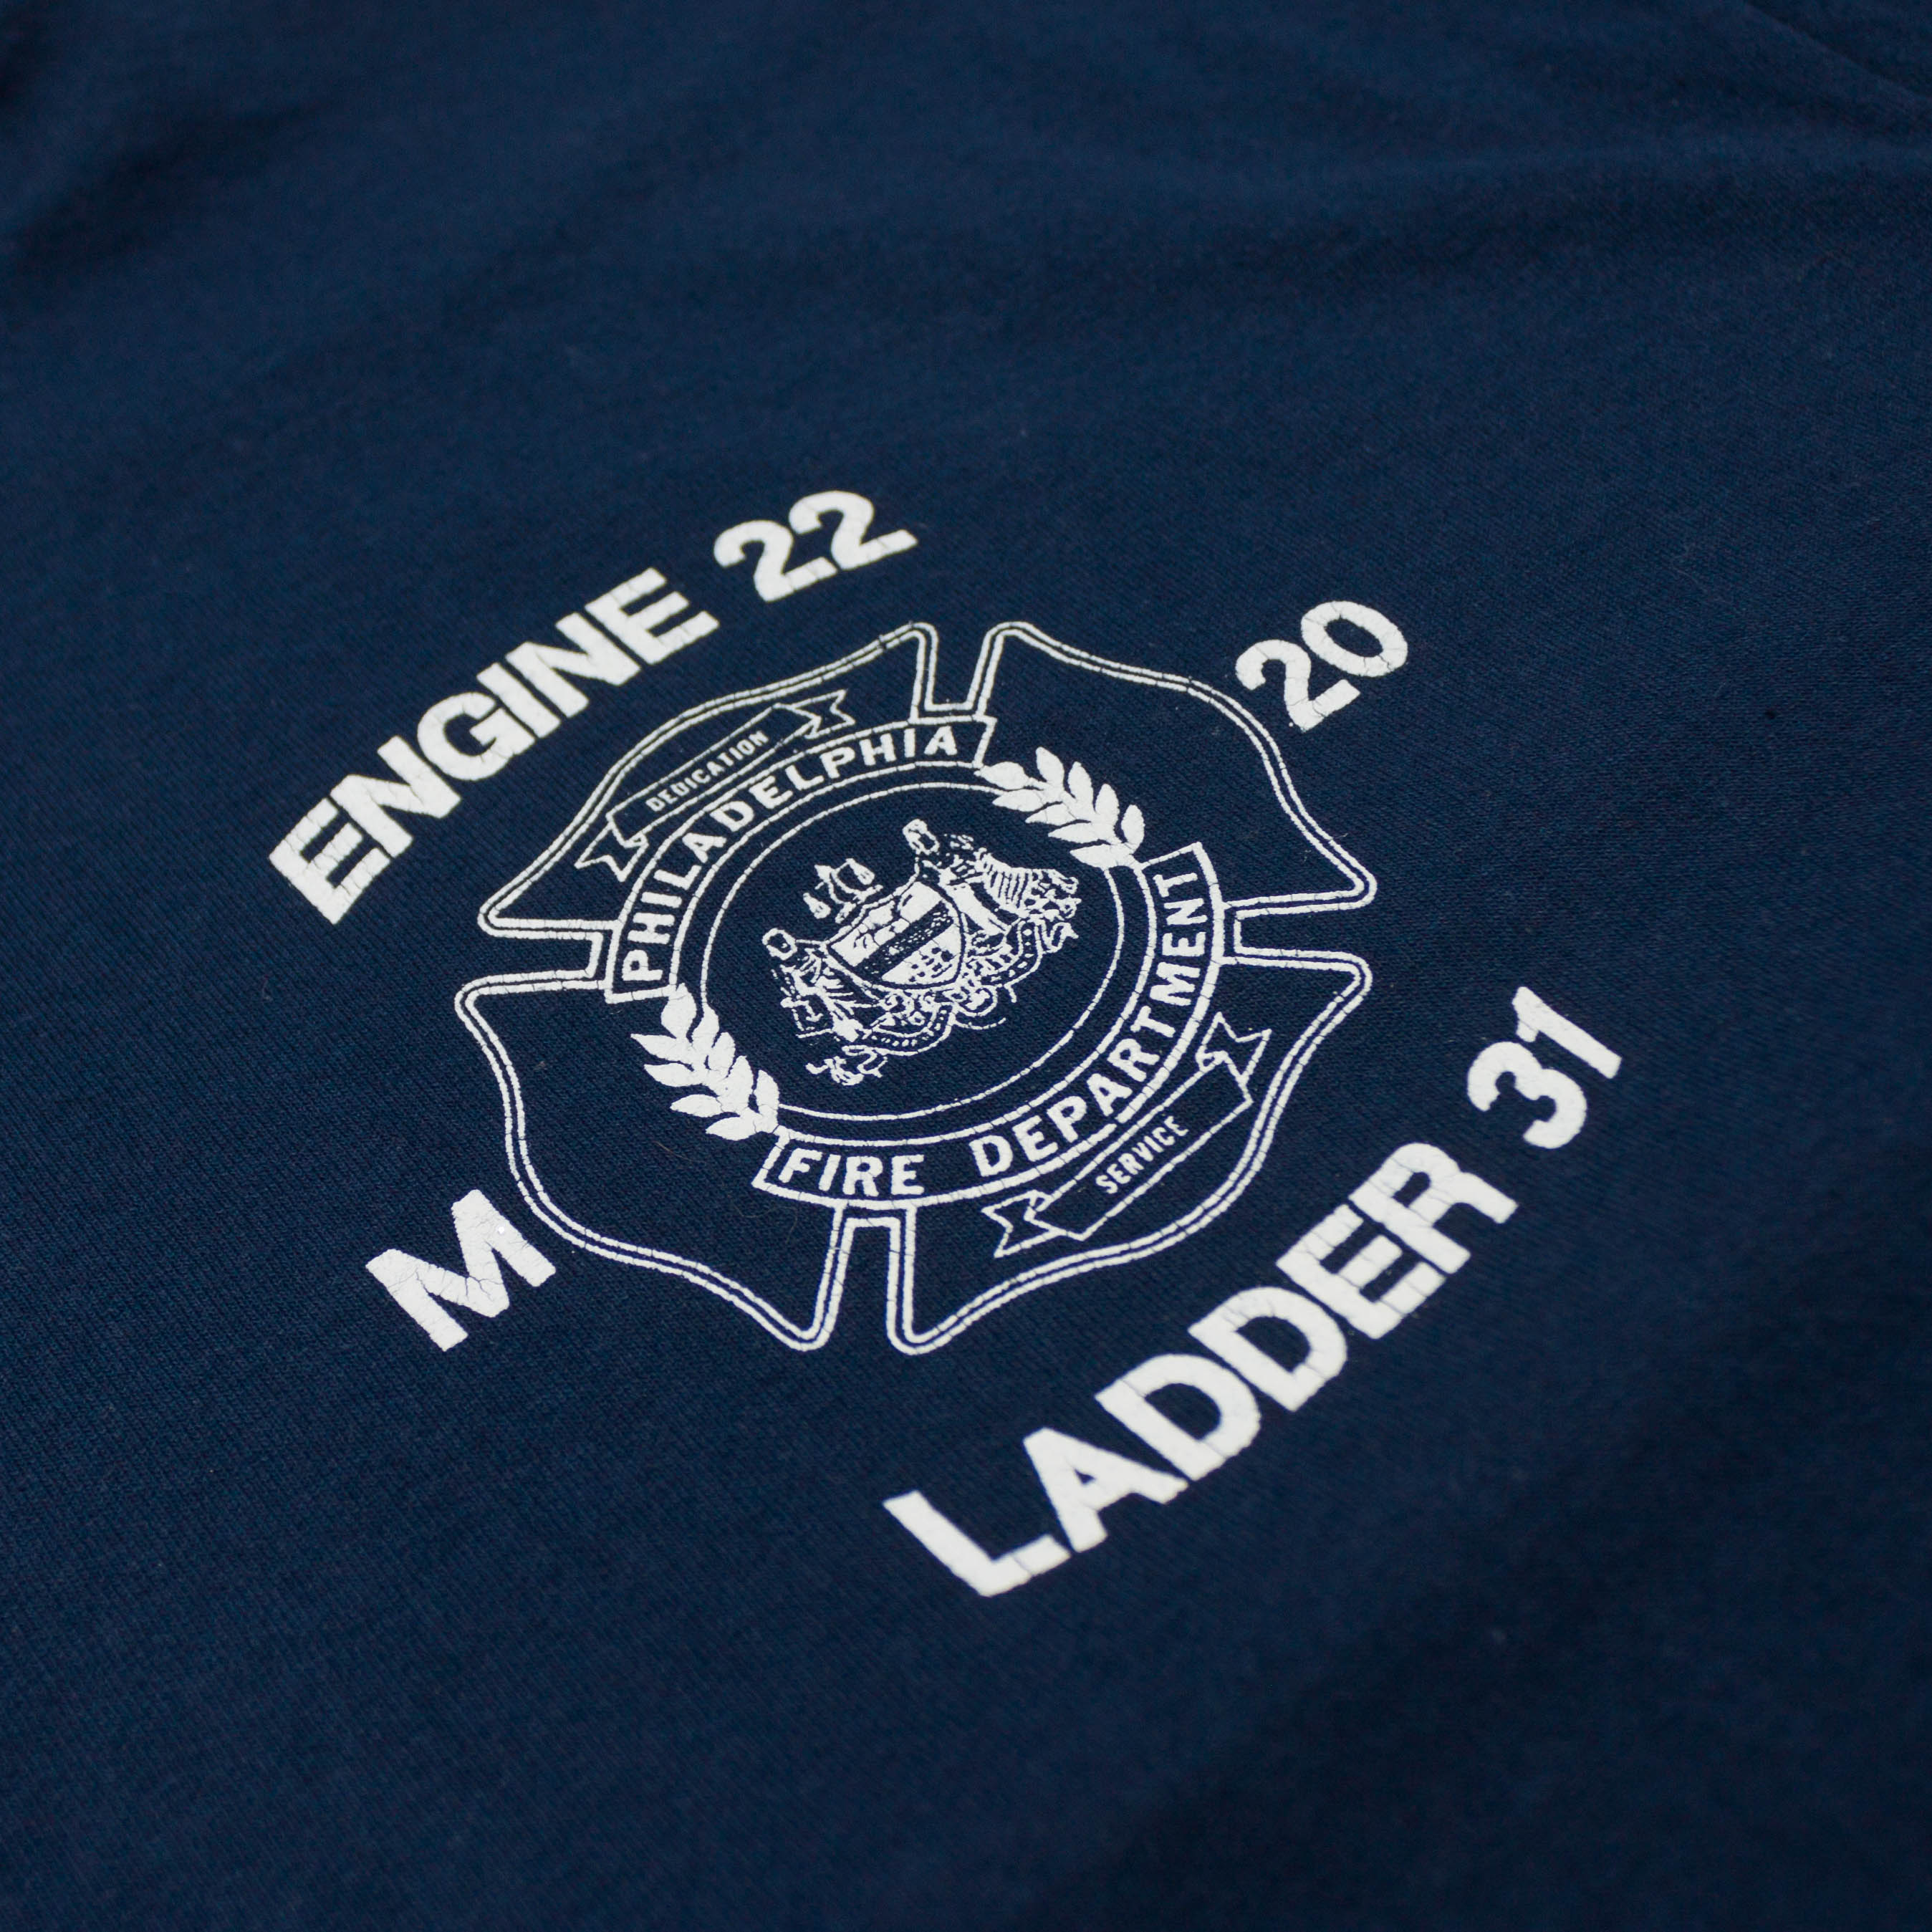 Vintage Single Stitch Philadelphia Fire Department T-shirt